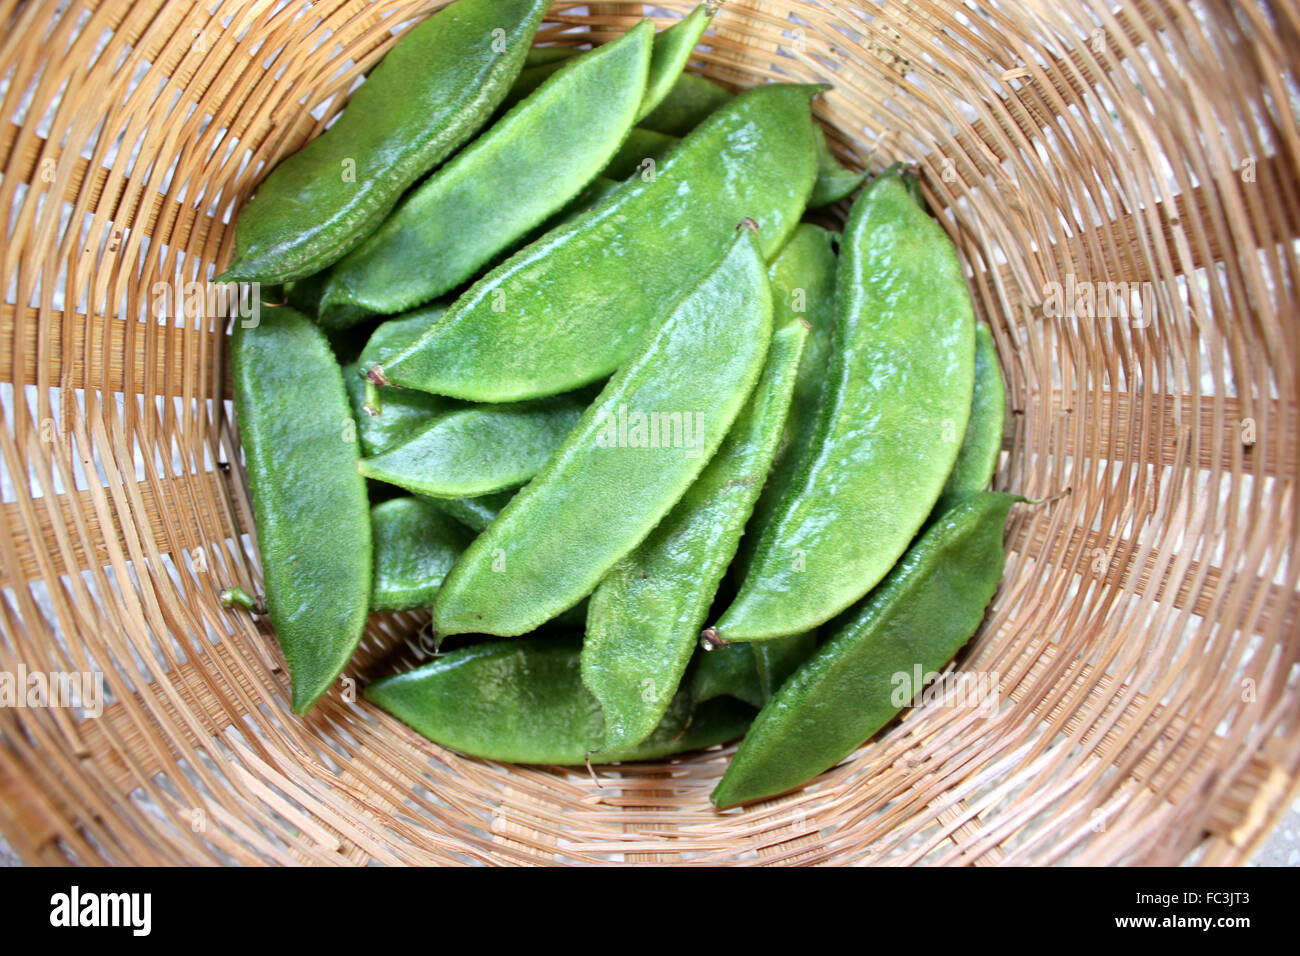 Dolichos lablab, vegetable vine crop with white flowers, unopened pods in a basket, used as vegetable, ripe seeds - Stock Image